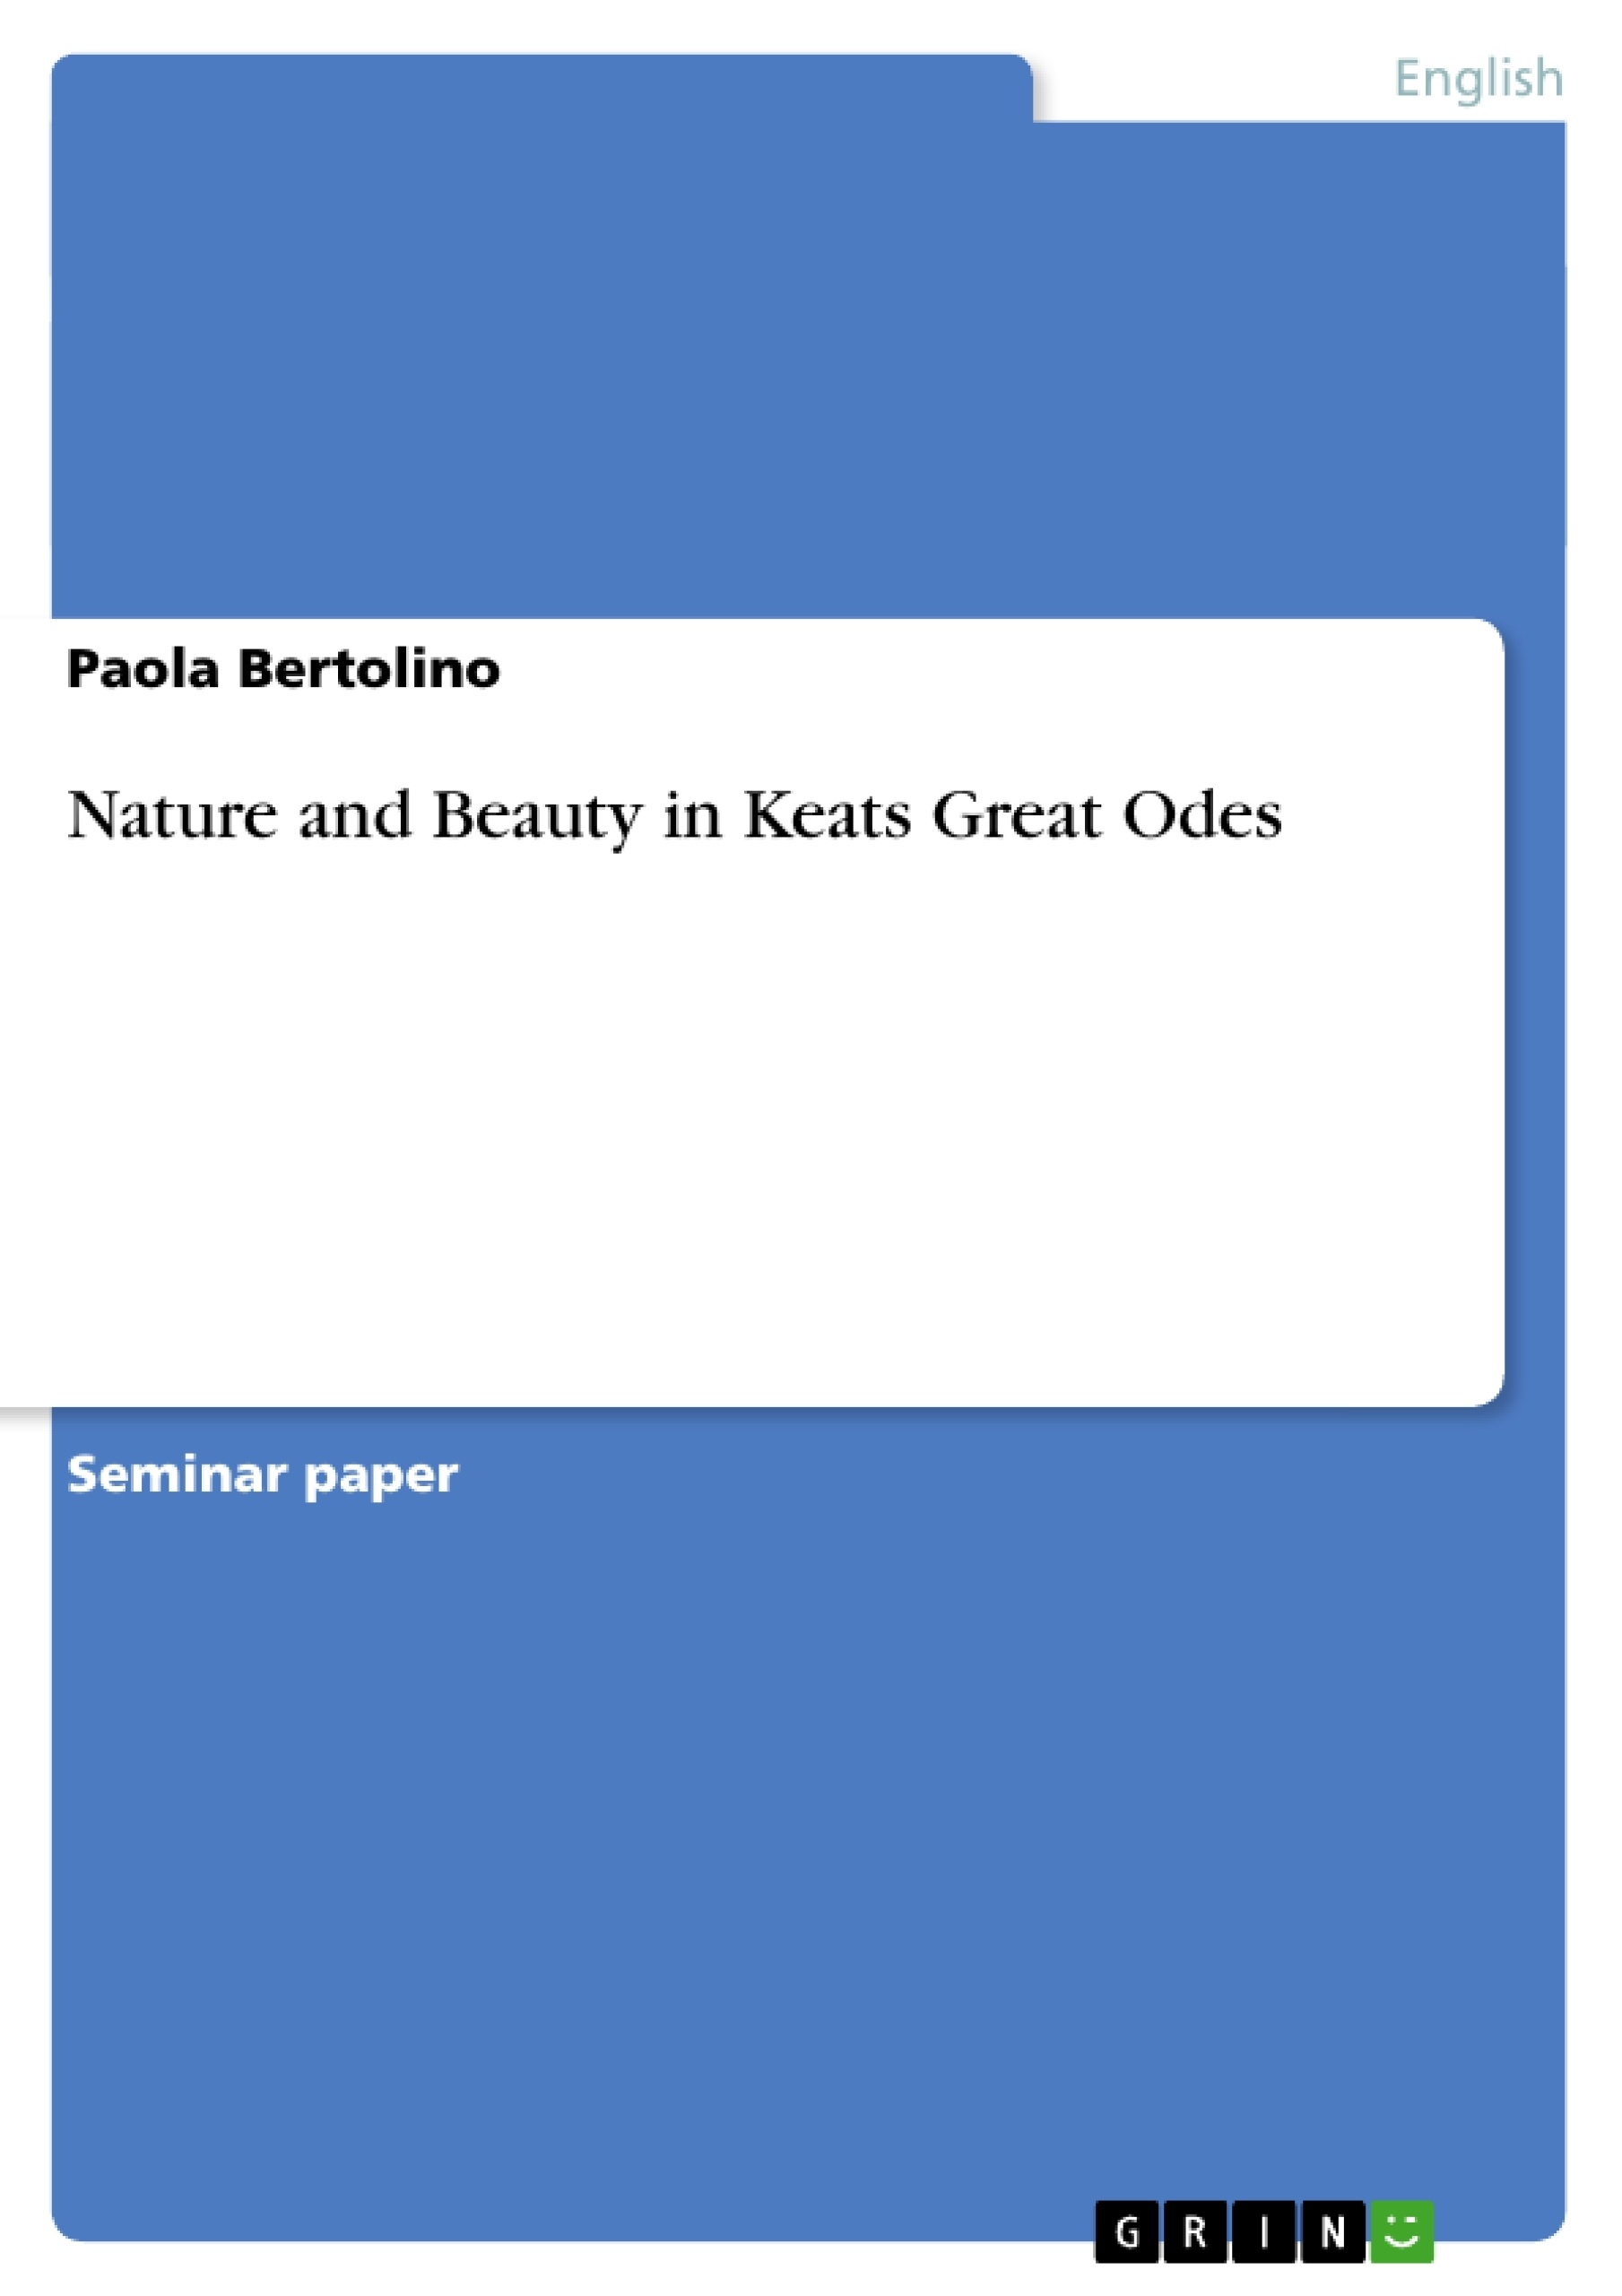 write an essay on the treatment of nature in romantic poetry